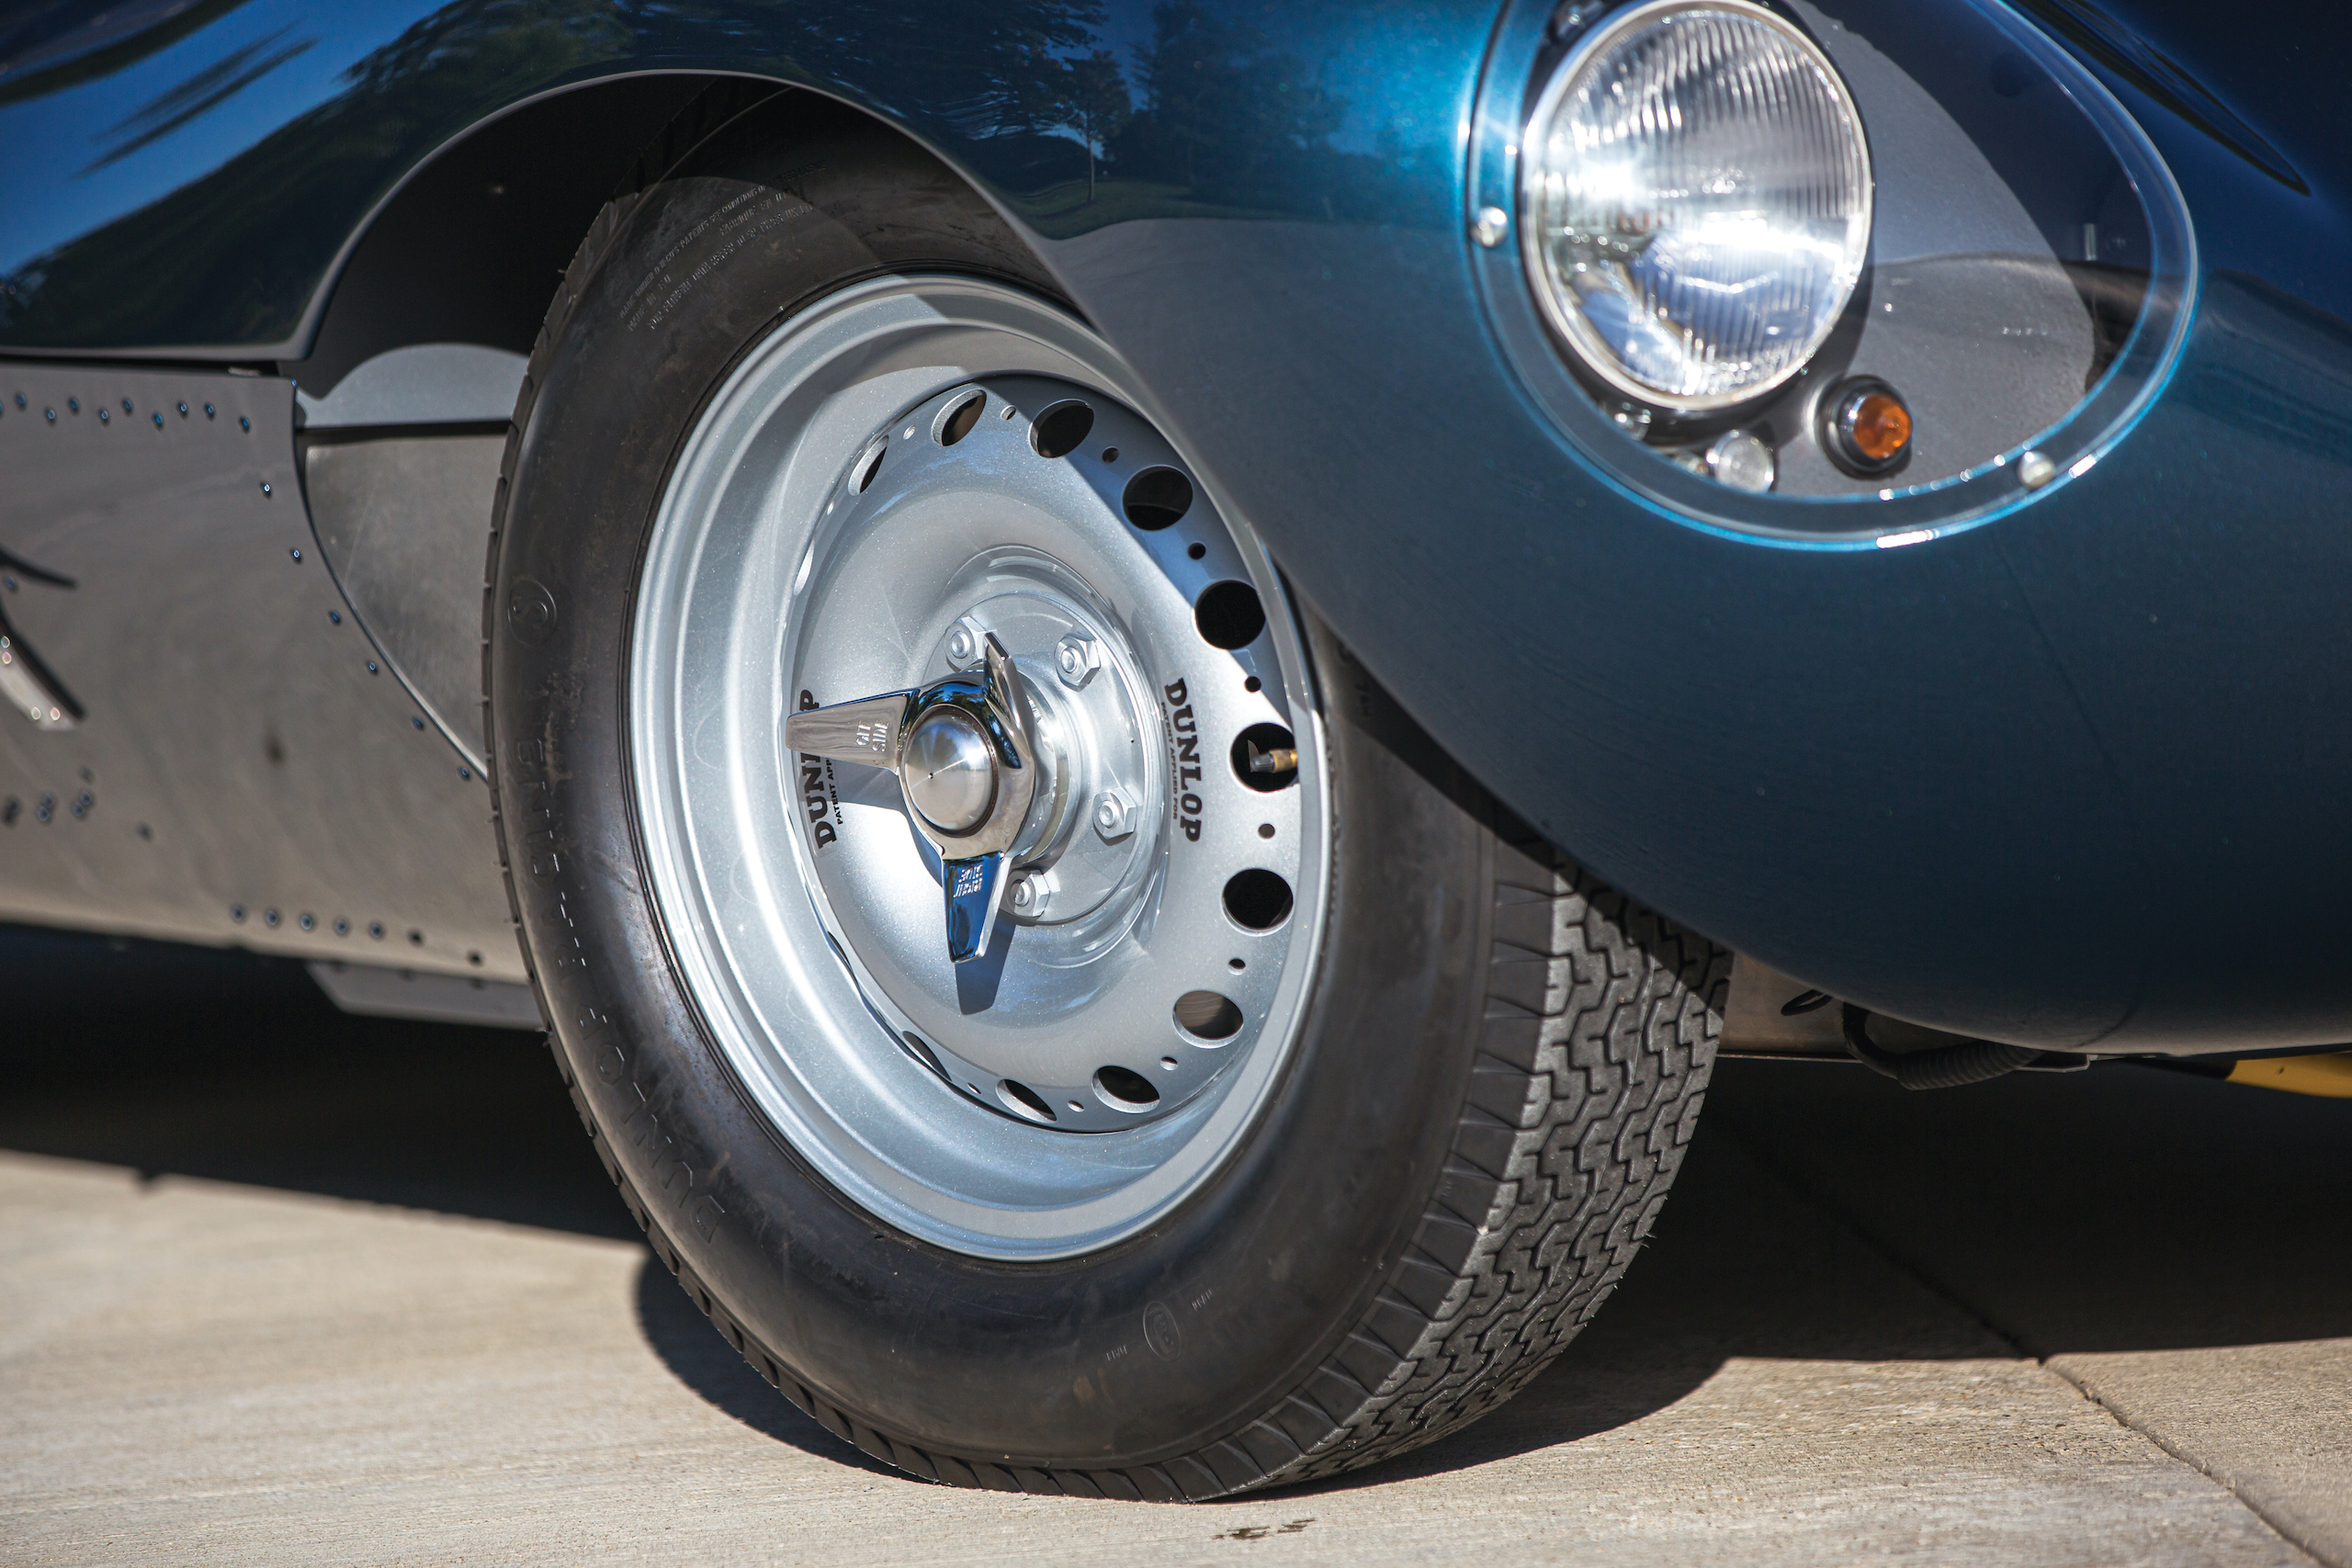 1955 Jag D-Type front wheel detail